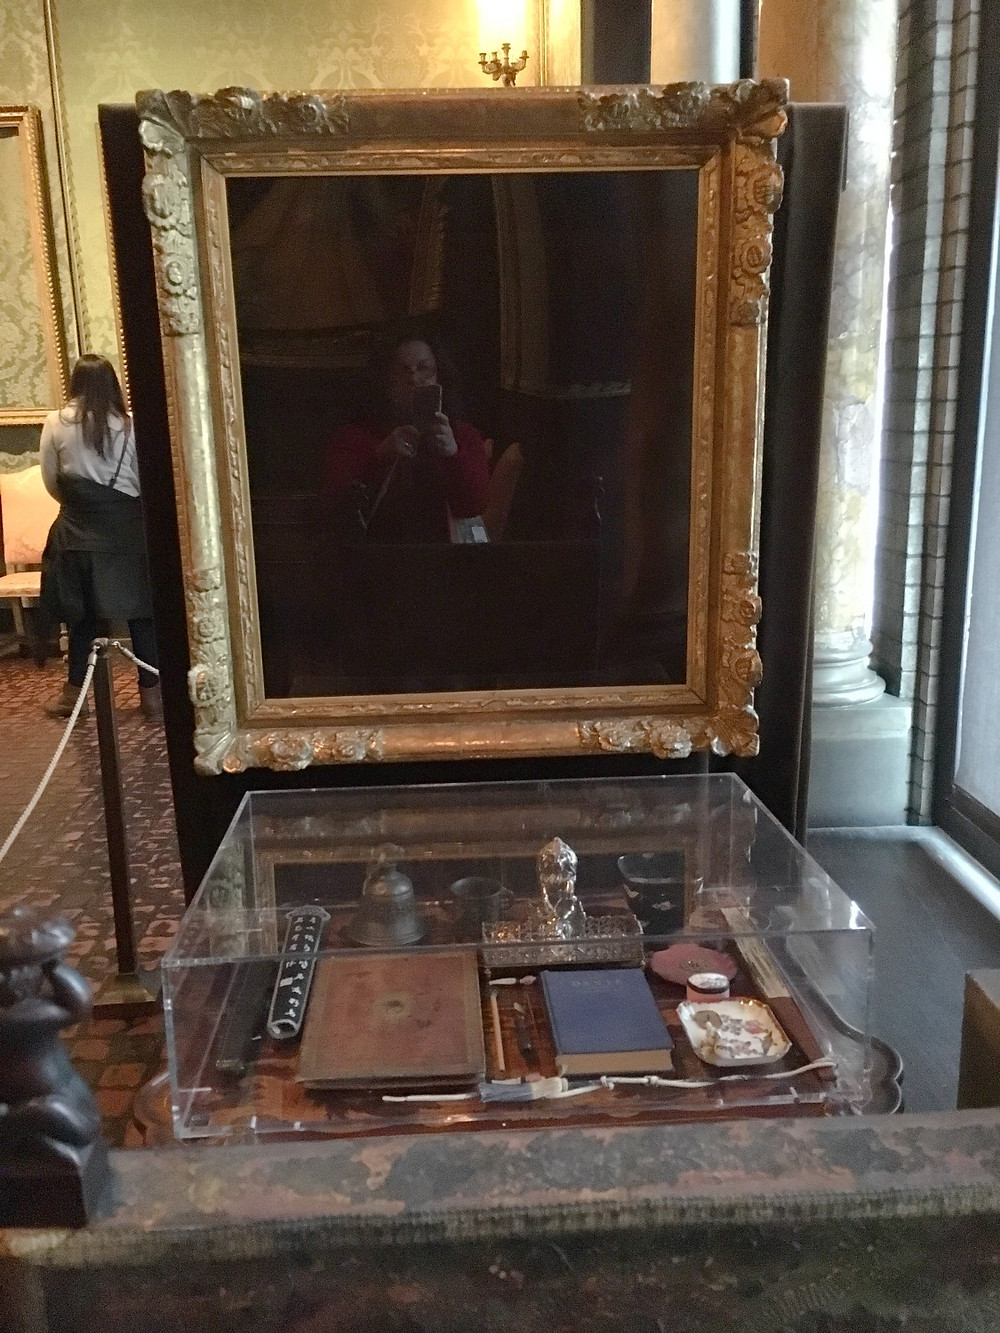 Empty frame for The Concert by Jan Vermeer (1632-1675). Photo by Diana Dinverno.